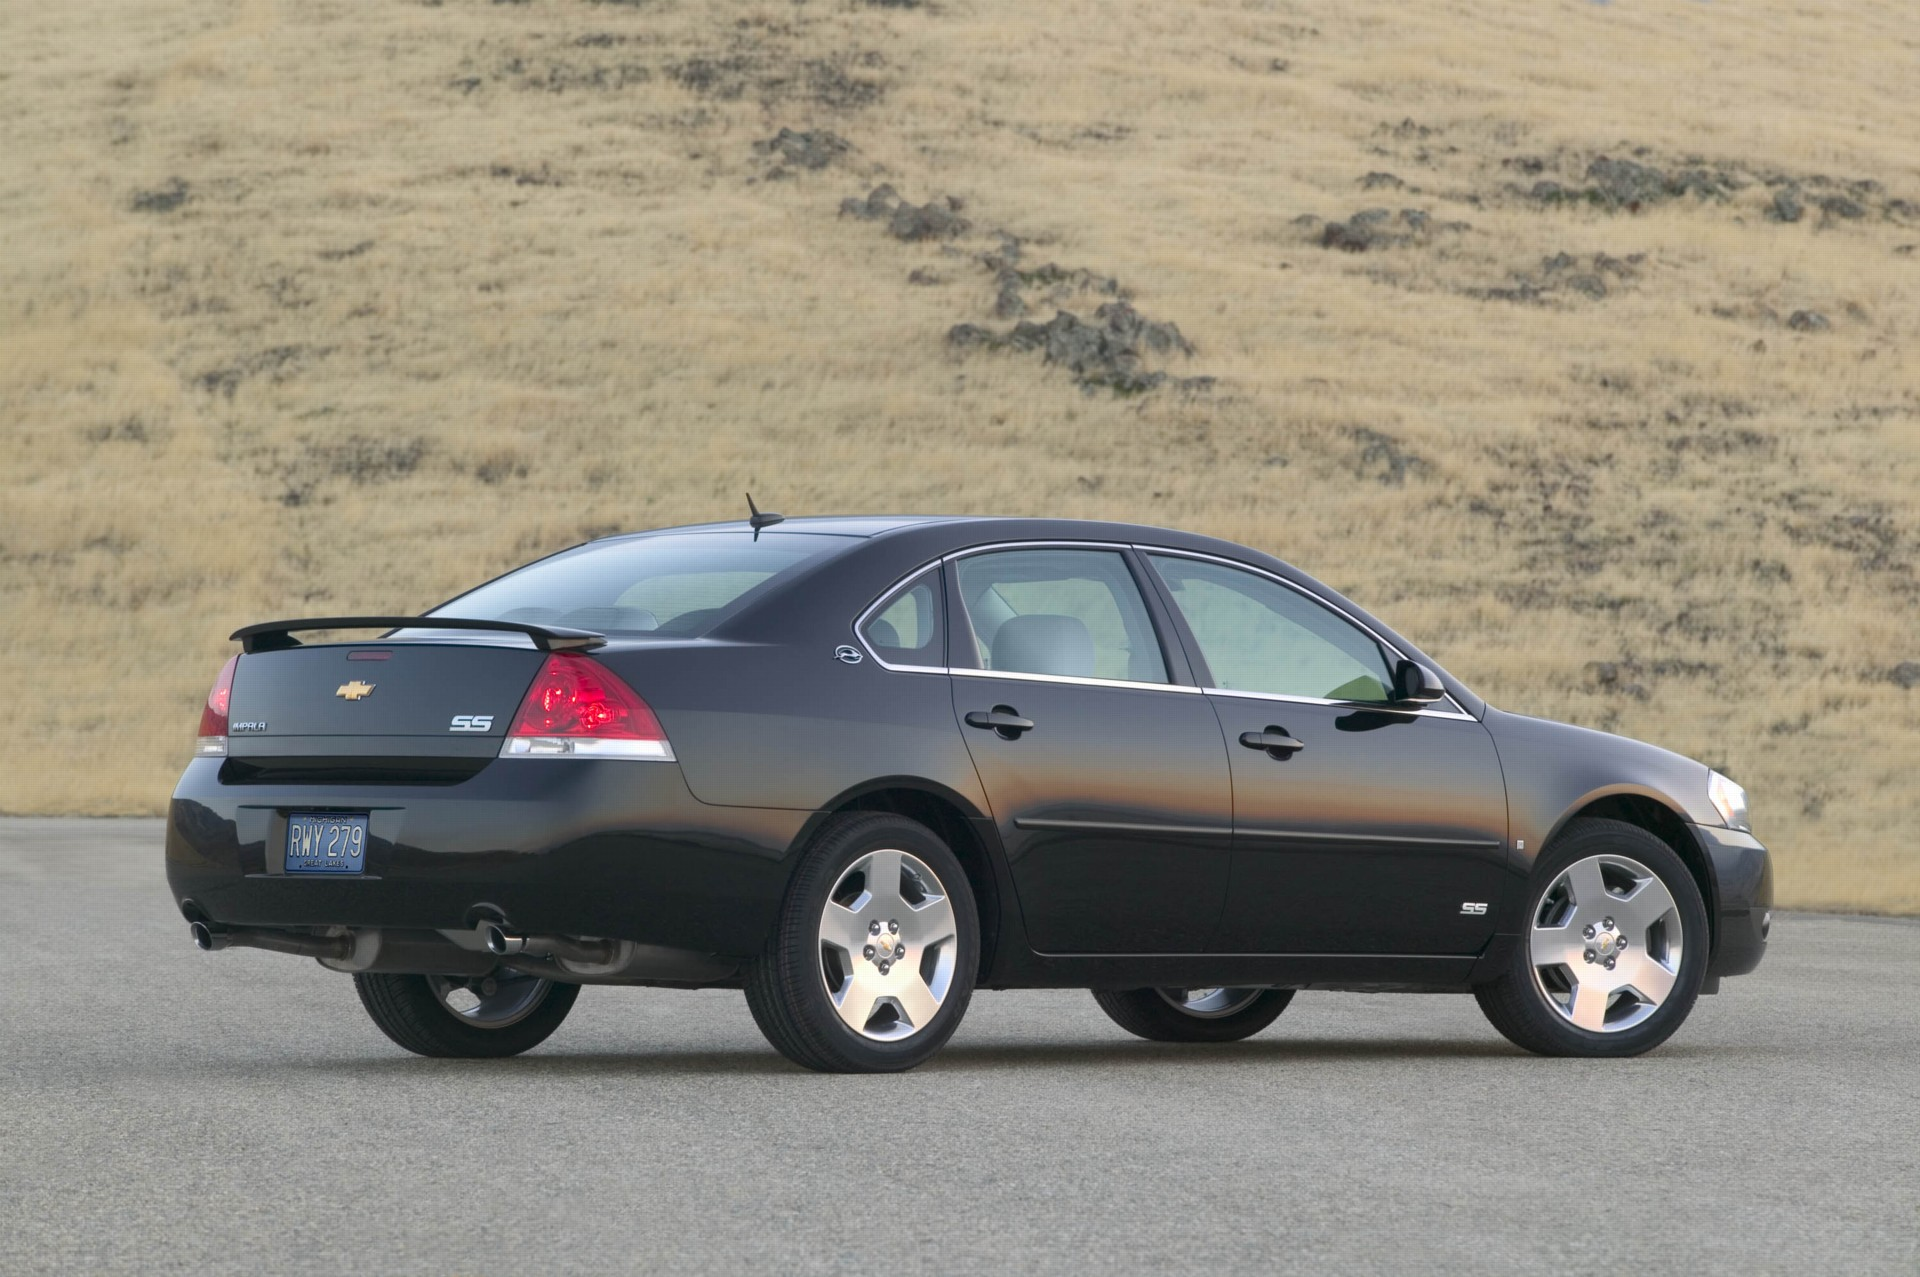 2007 chevrolet impala history pictures value auction sales research and news. Black Bedroom Furniture Sets. Home Design Ideas